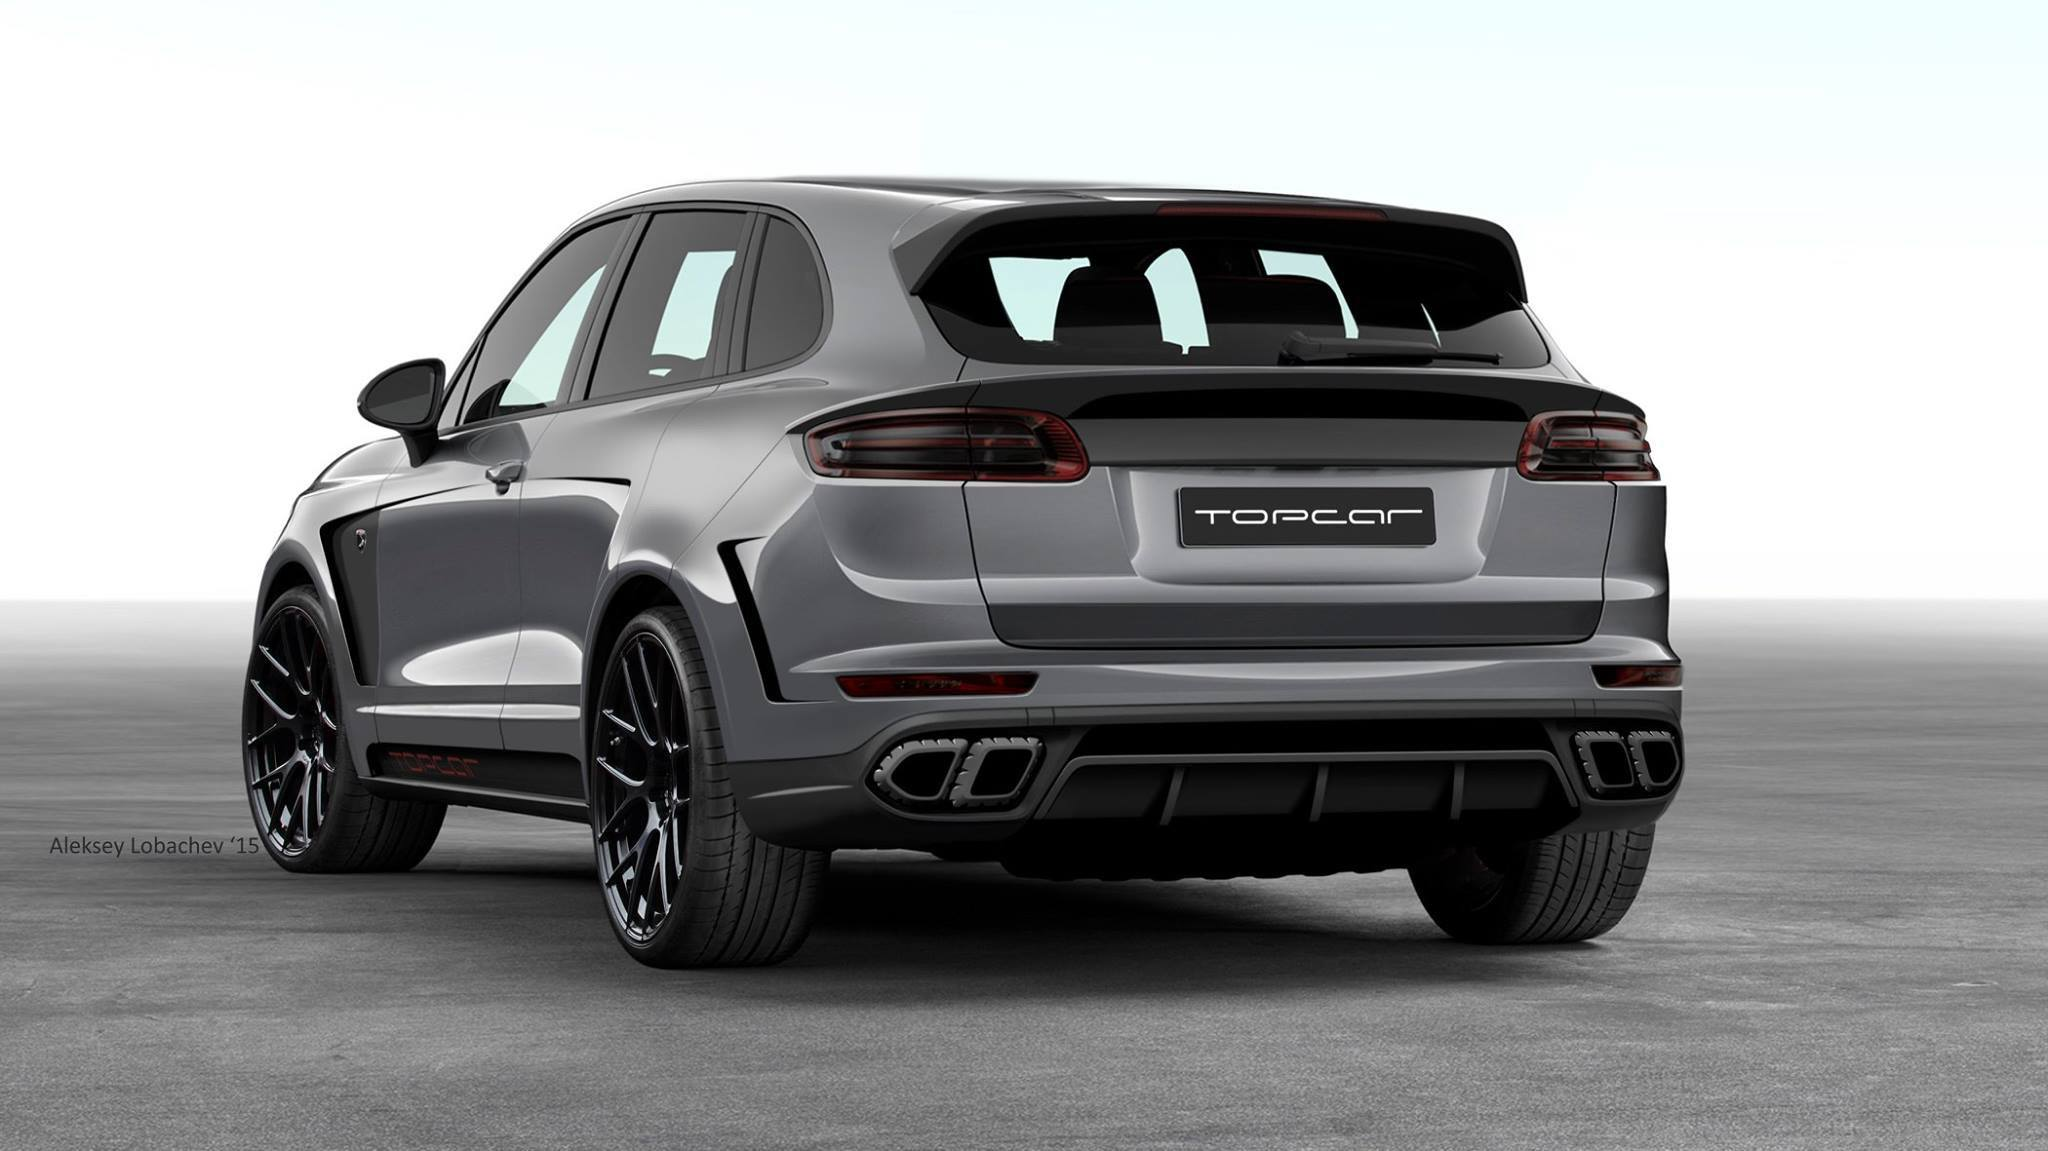 Topcar porsche cayenne advantage has 911 headlights and macan taillights